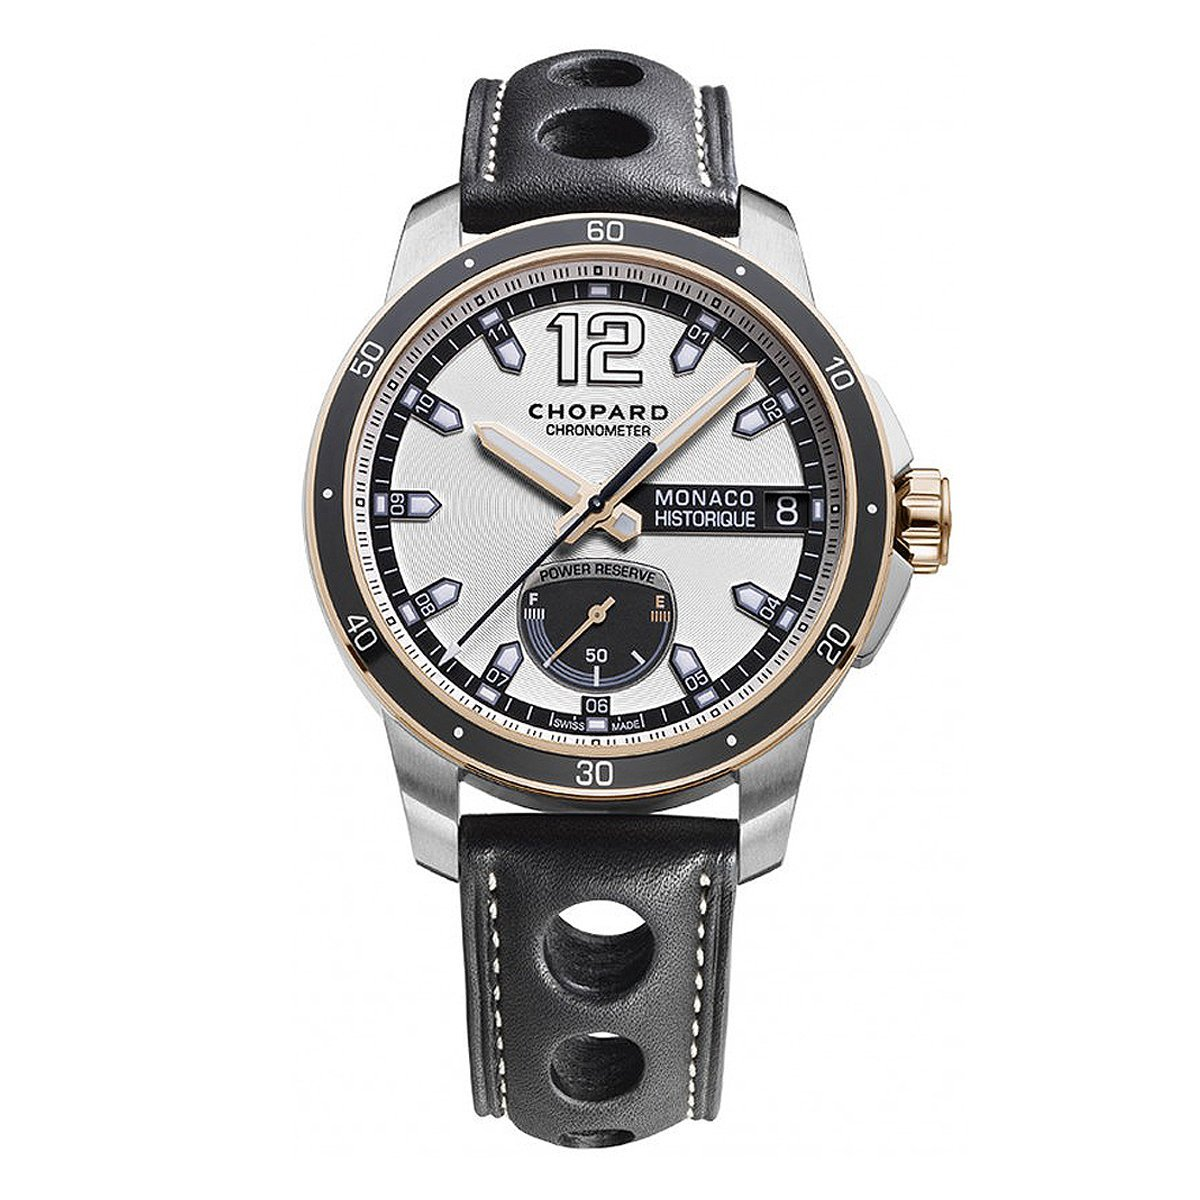 Chopard Grand Prix Monaco Historique Men's Watch Power Control Rose Gold - Watches & Crystals